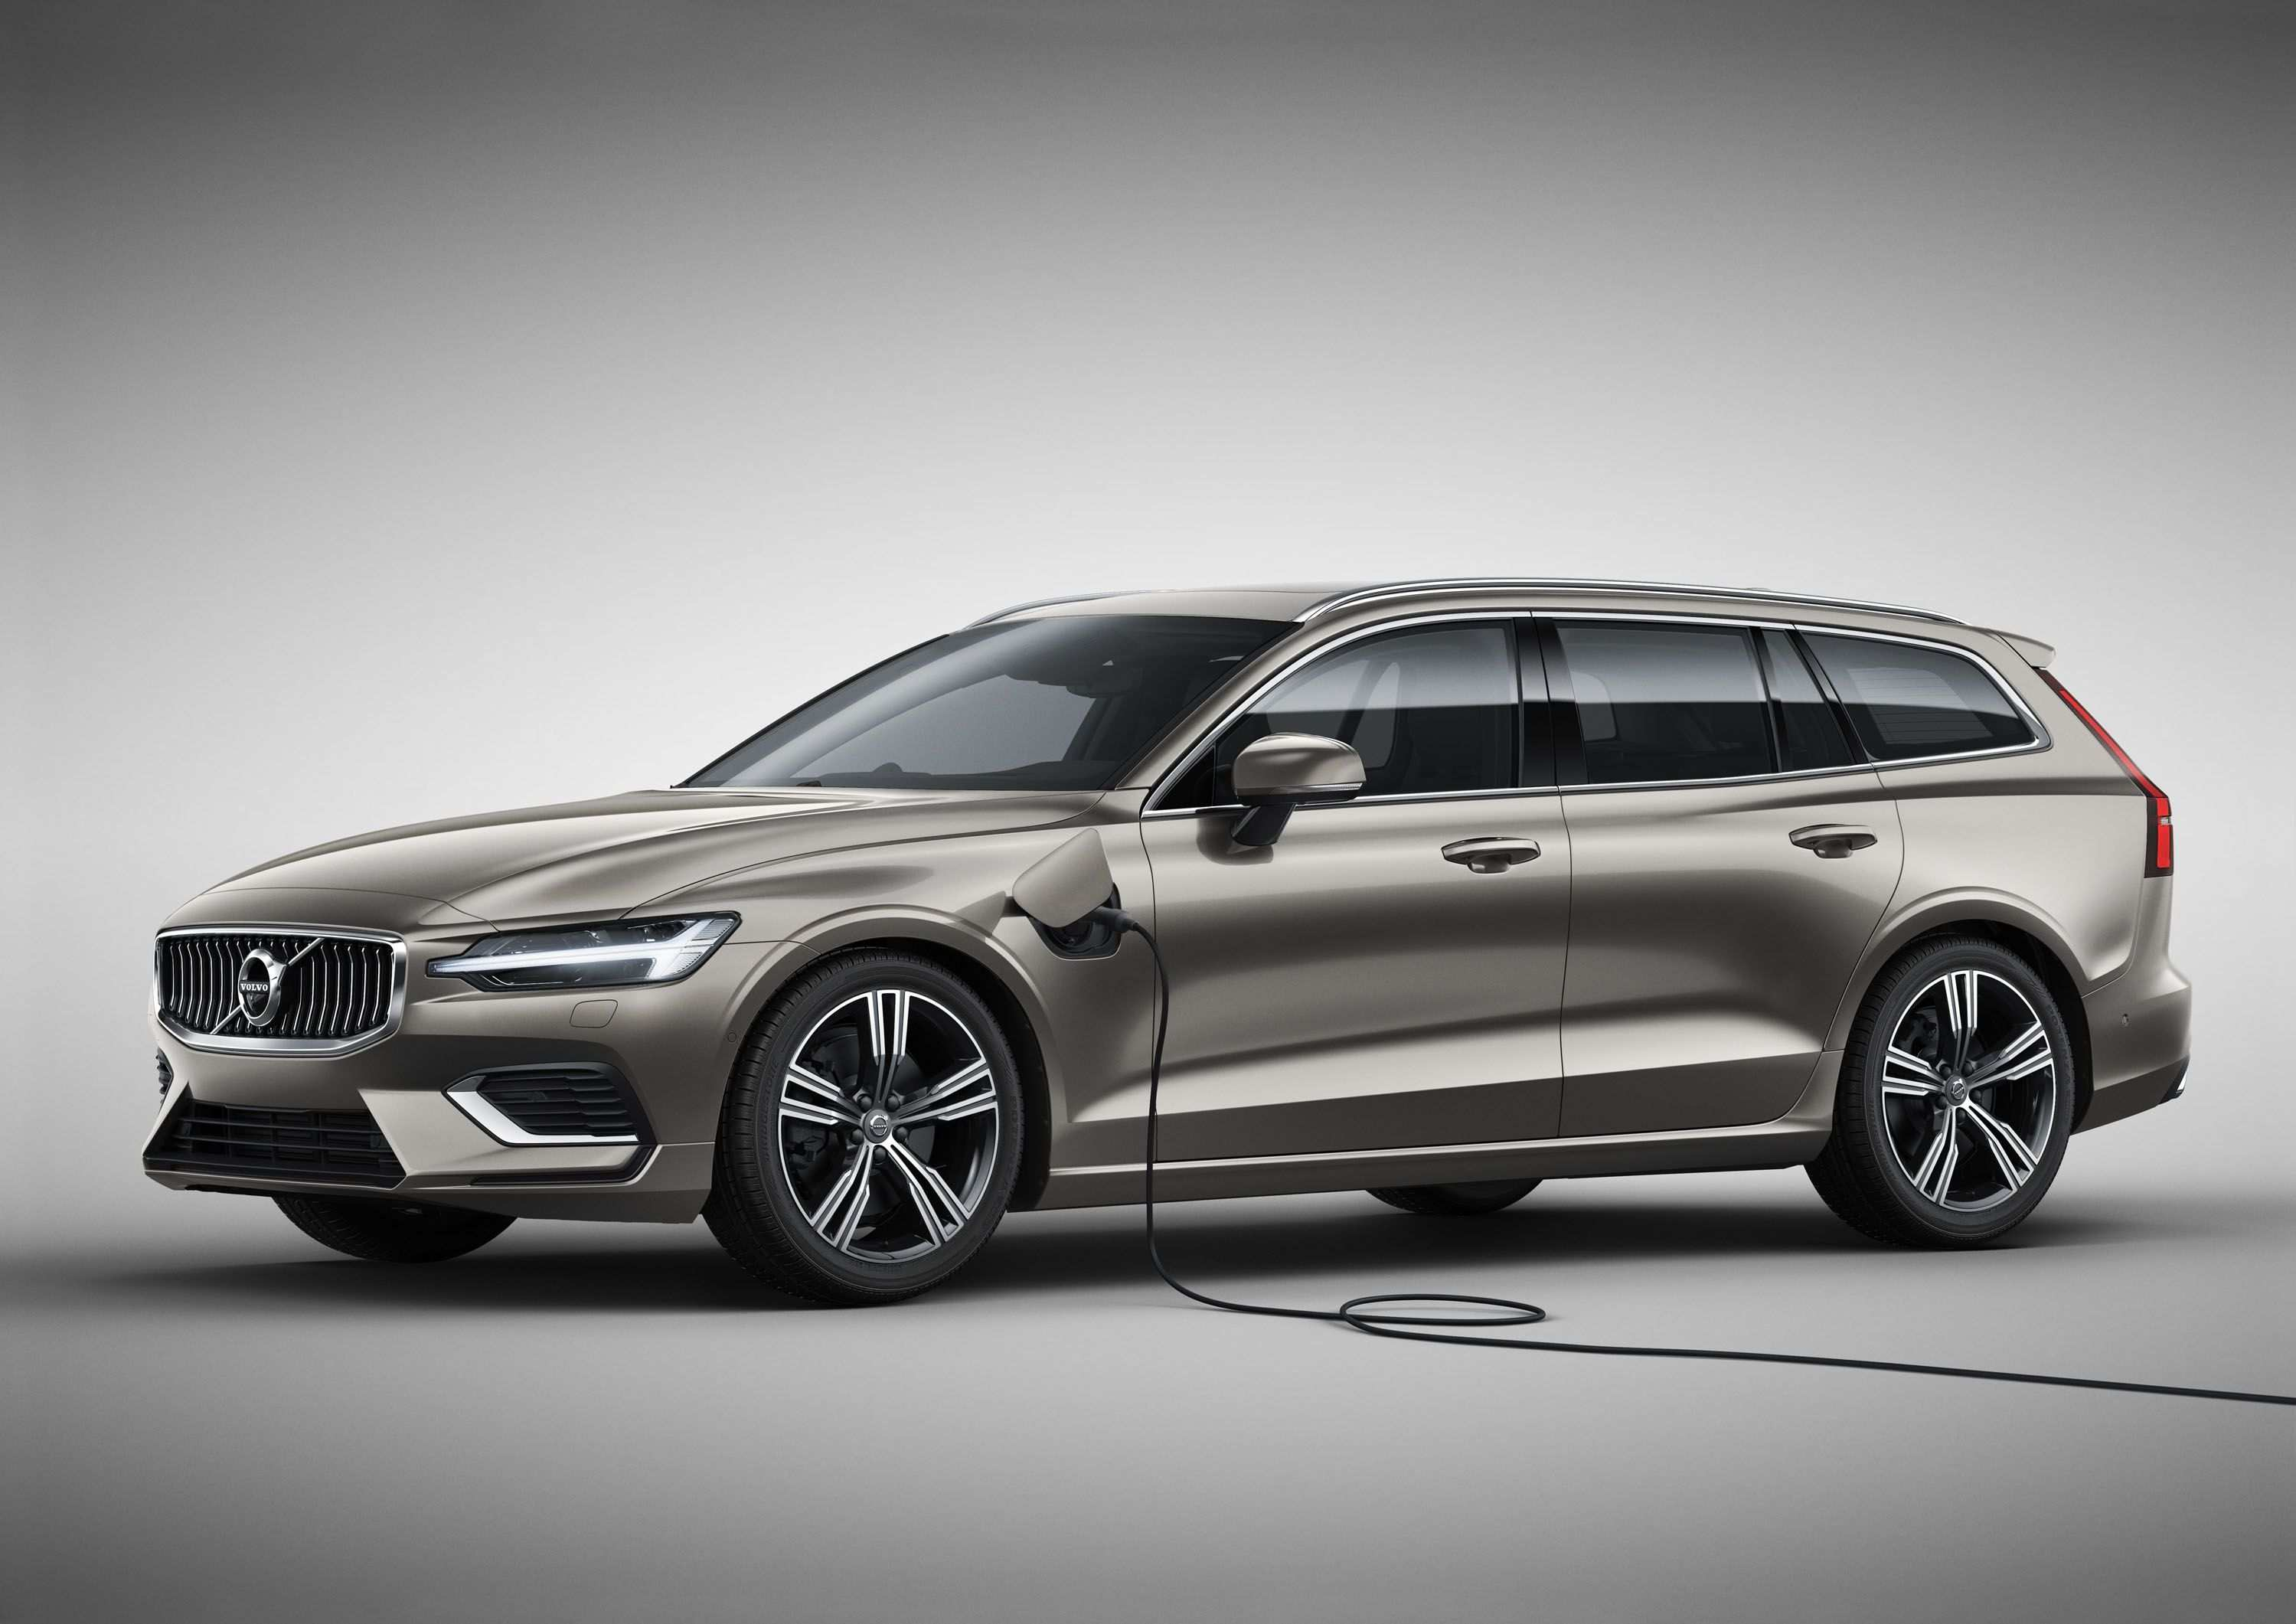 98 New Volvo 2019 Station Wagon Release Date Rumors for Volvo 2019 Station Wagon Release Date